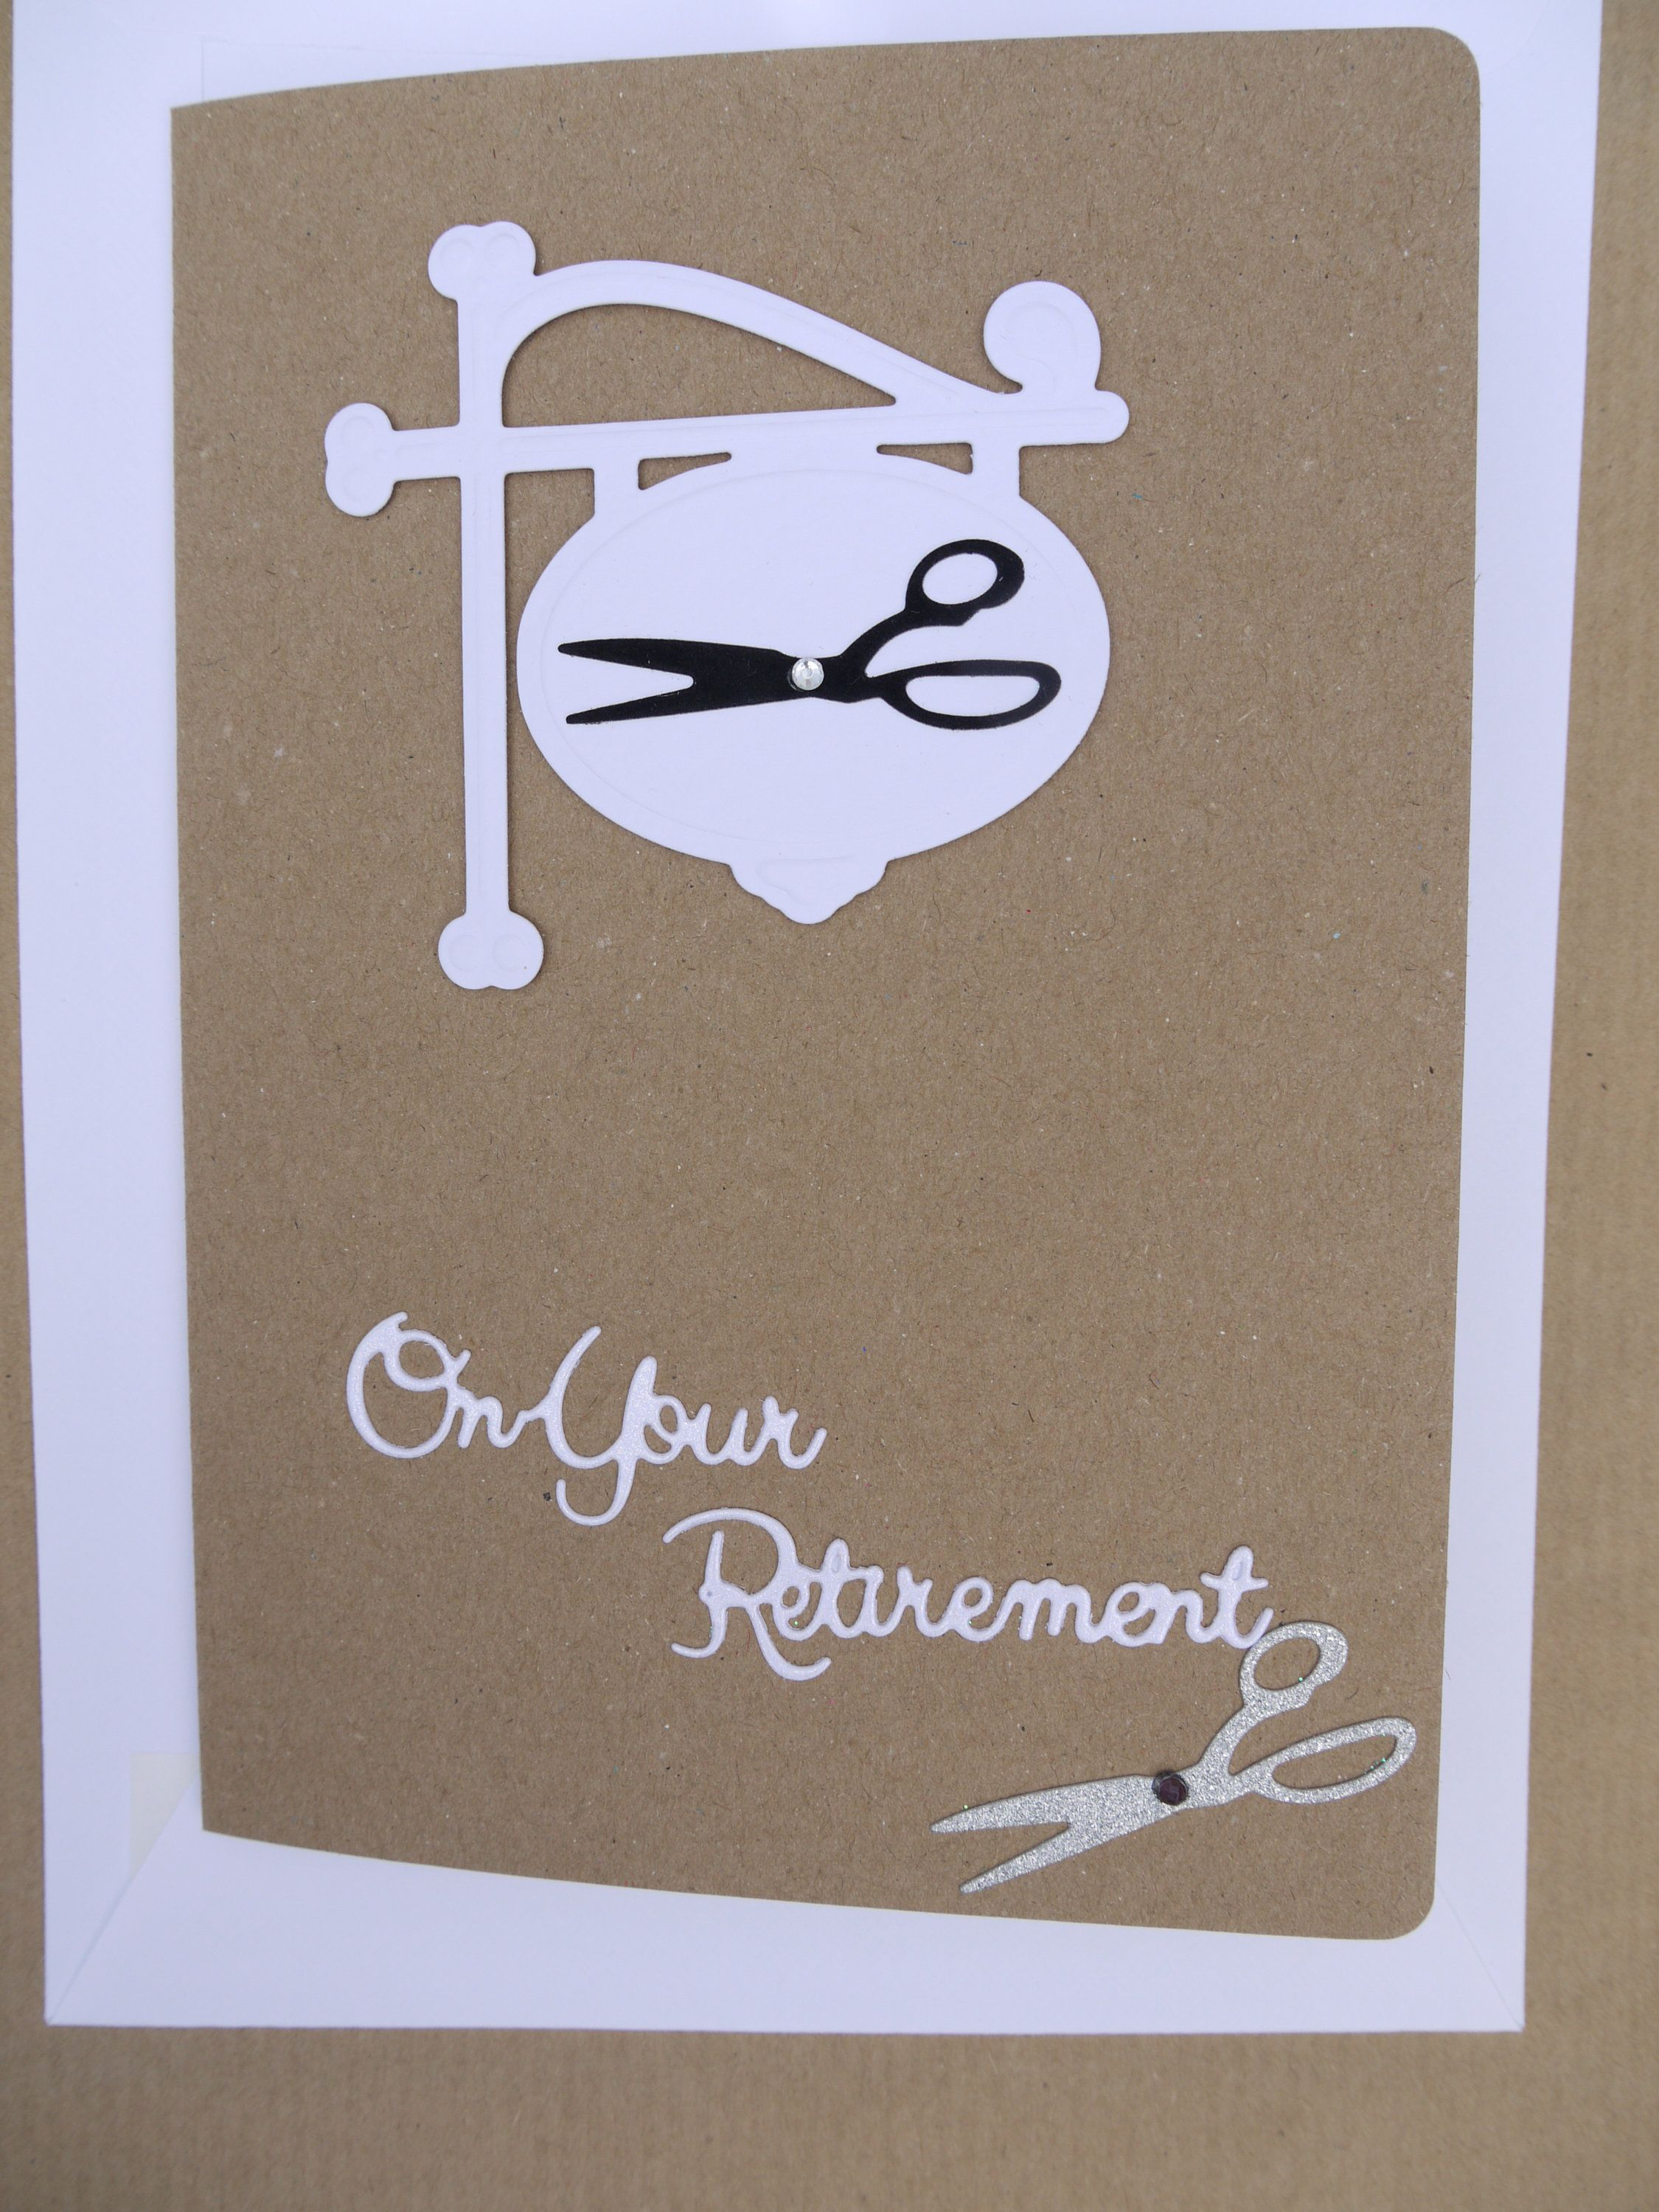 Retirement card handmade hairdresser scissors dressmaker barber